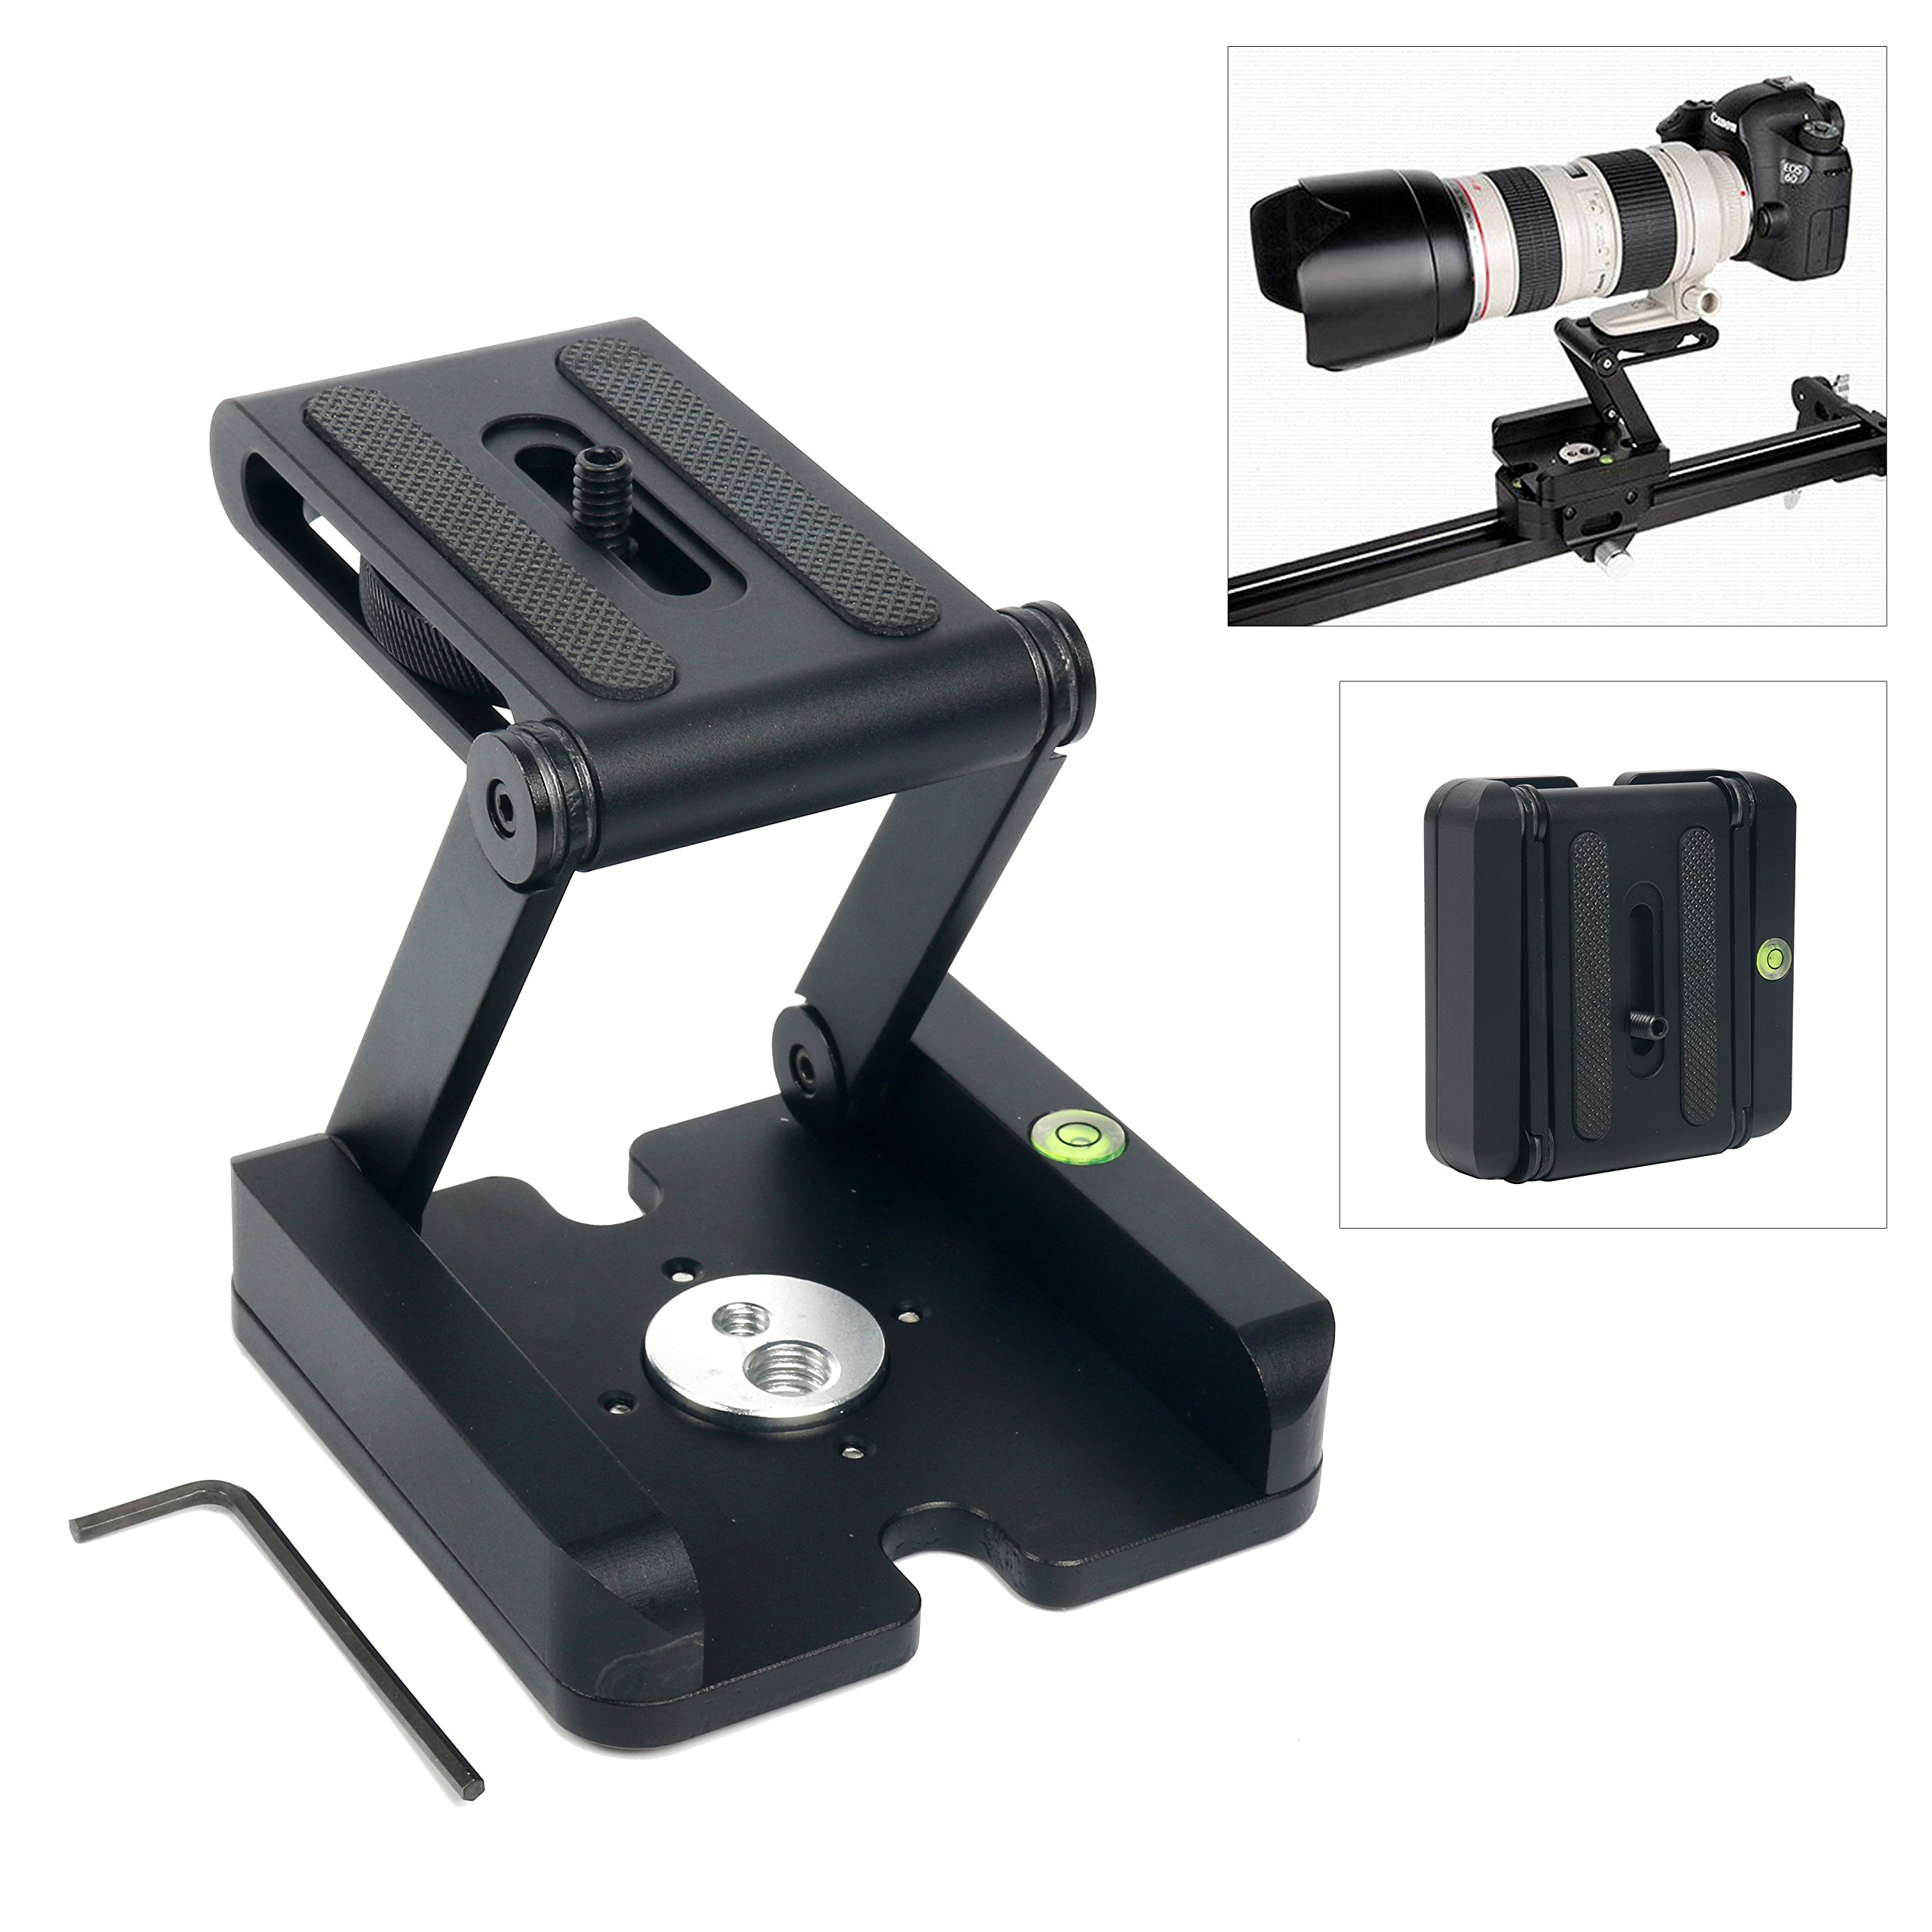 YaeCCC Aluminum Alloy Folding Z Head Desktop Stand Holder Quick Release Plate Compatible with DSLR Camera Camcorder Tripod by YaeCCC